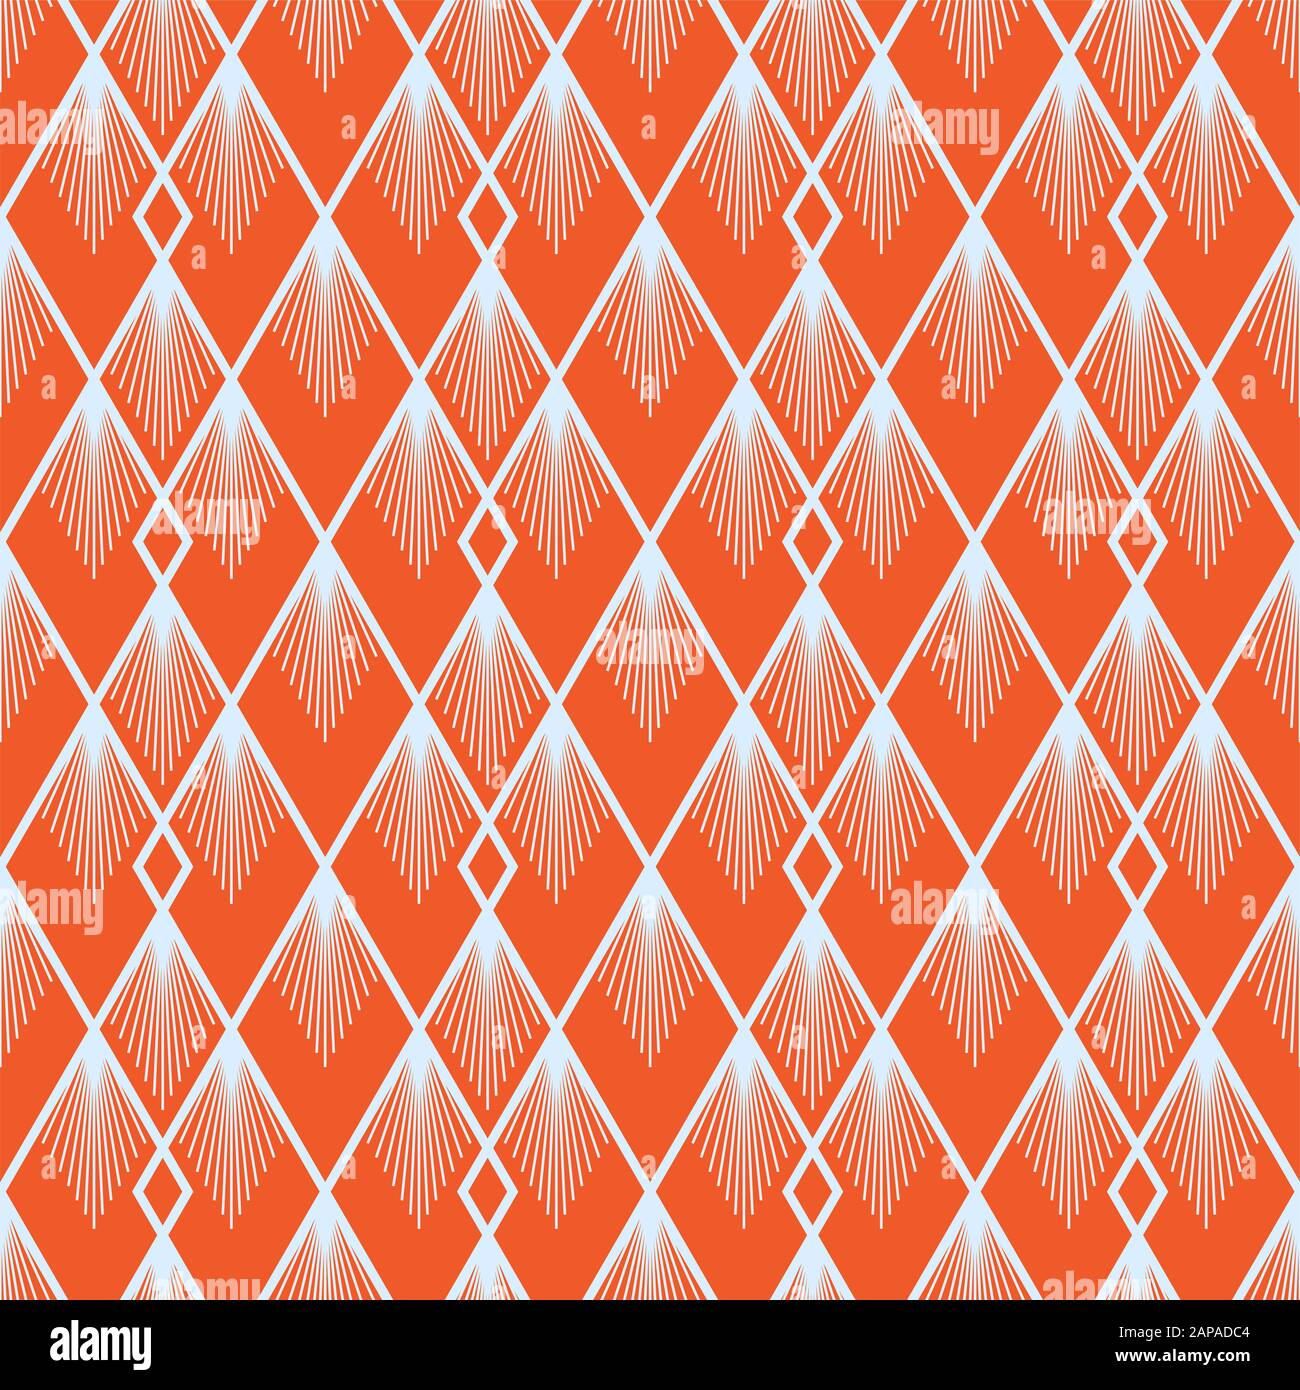 art deco vector semless pattern vintage decorative summer orange geometric background texture for wallpaper print poster card and etc simple 1920 2APADC4